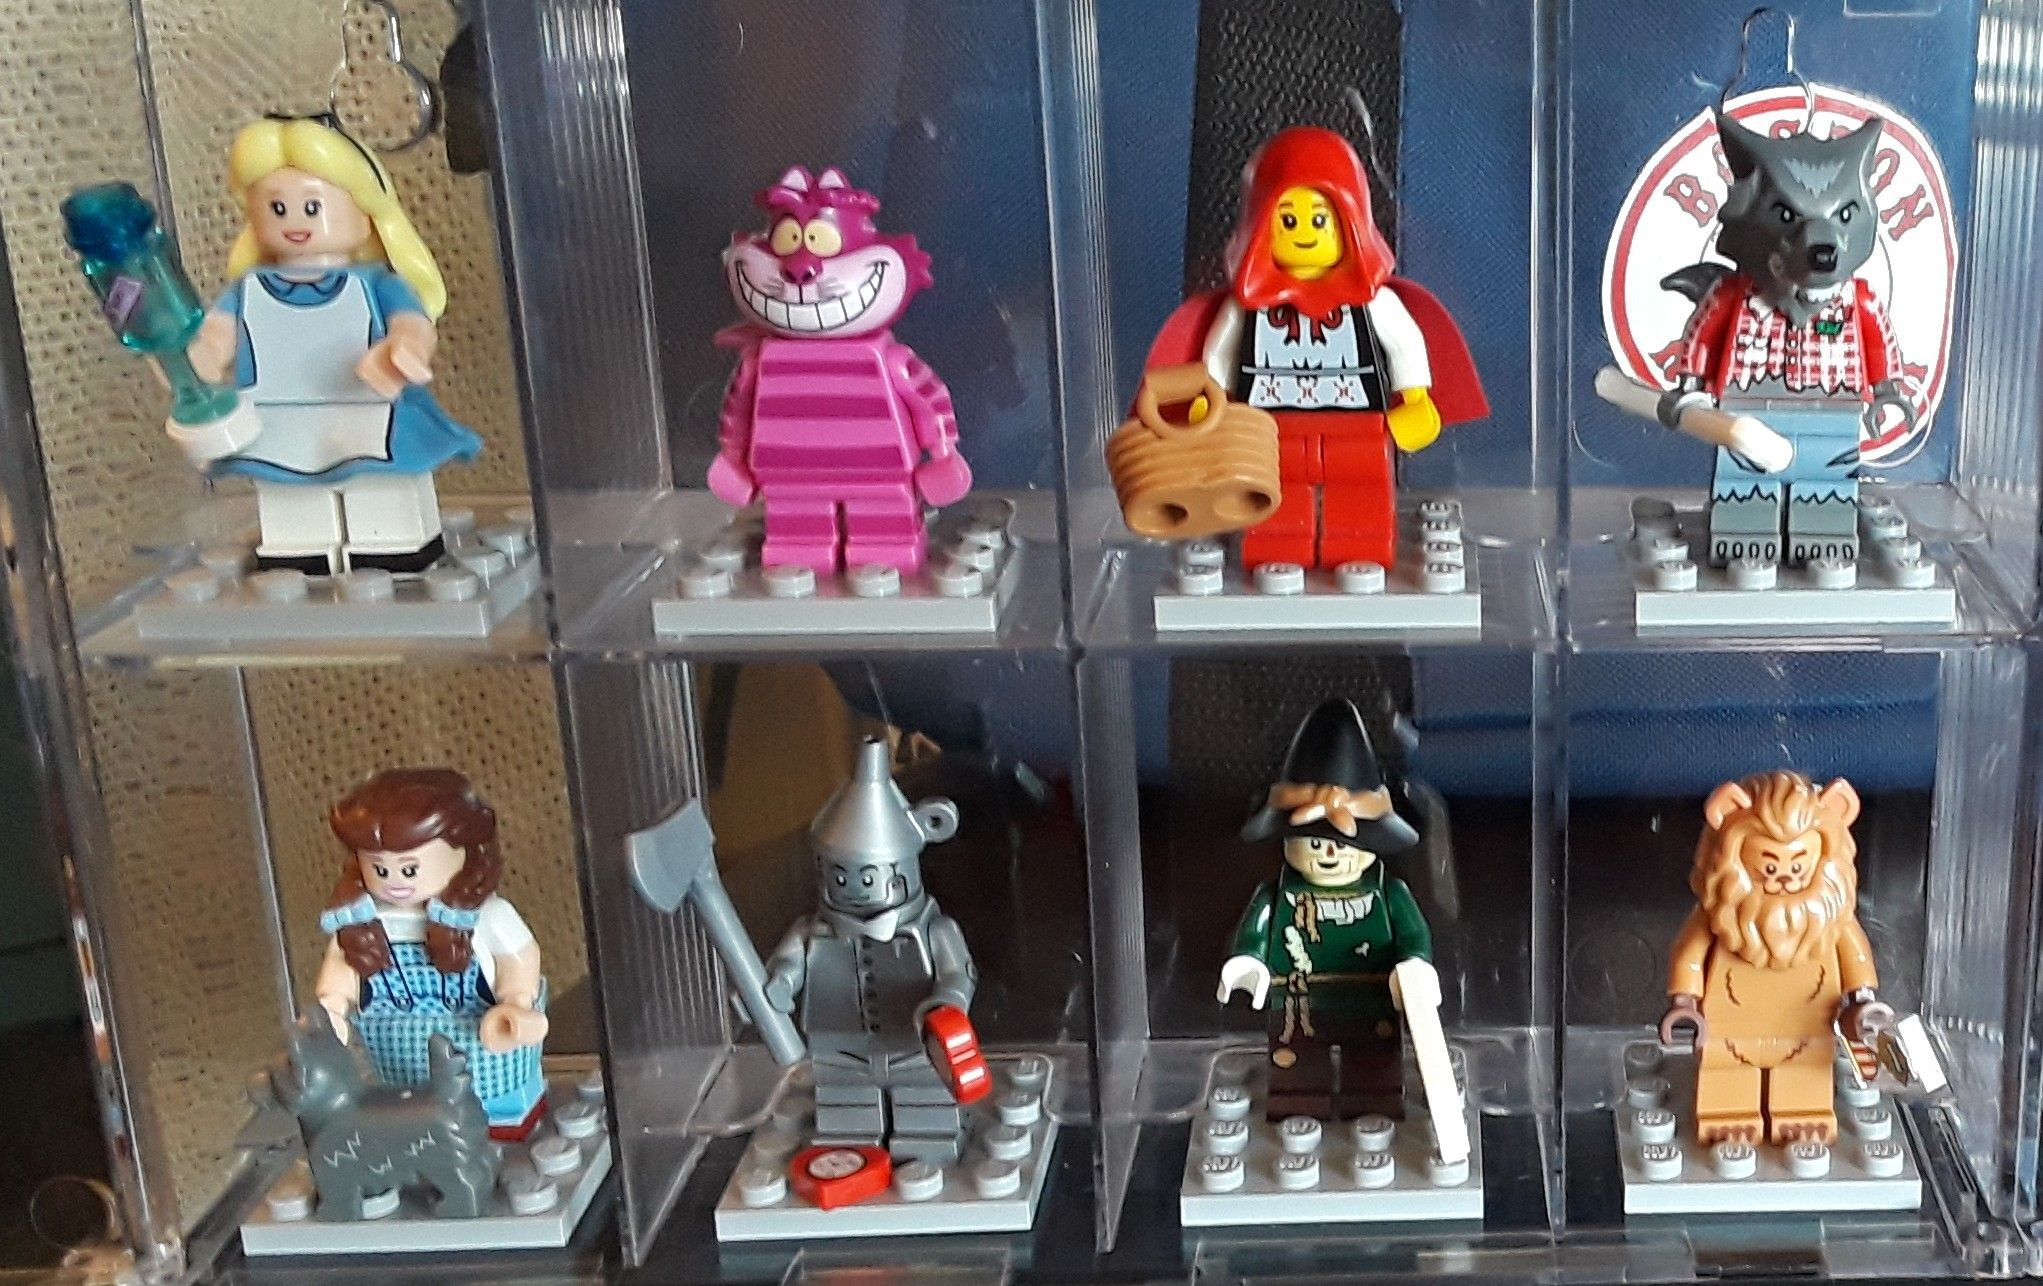 Pin by R S on Legos Man (With images) Baseball cards